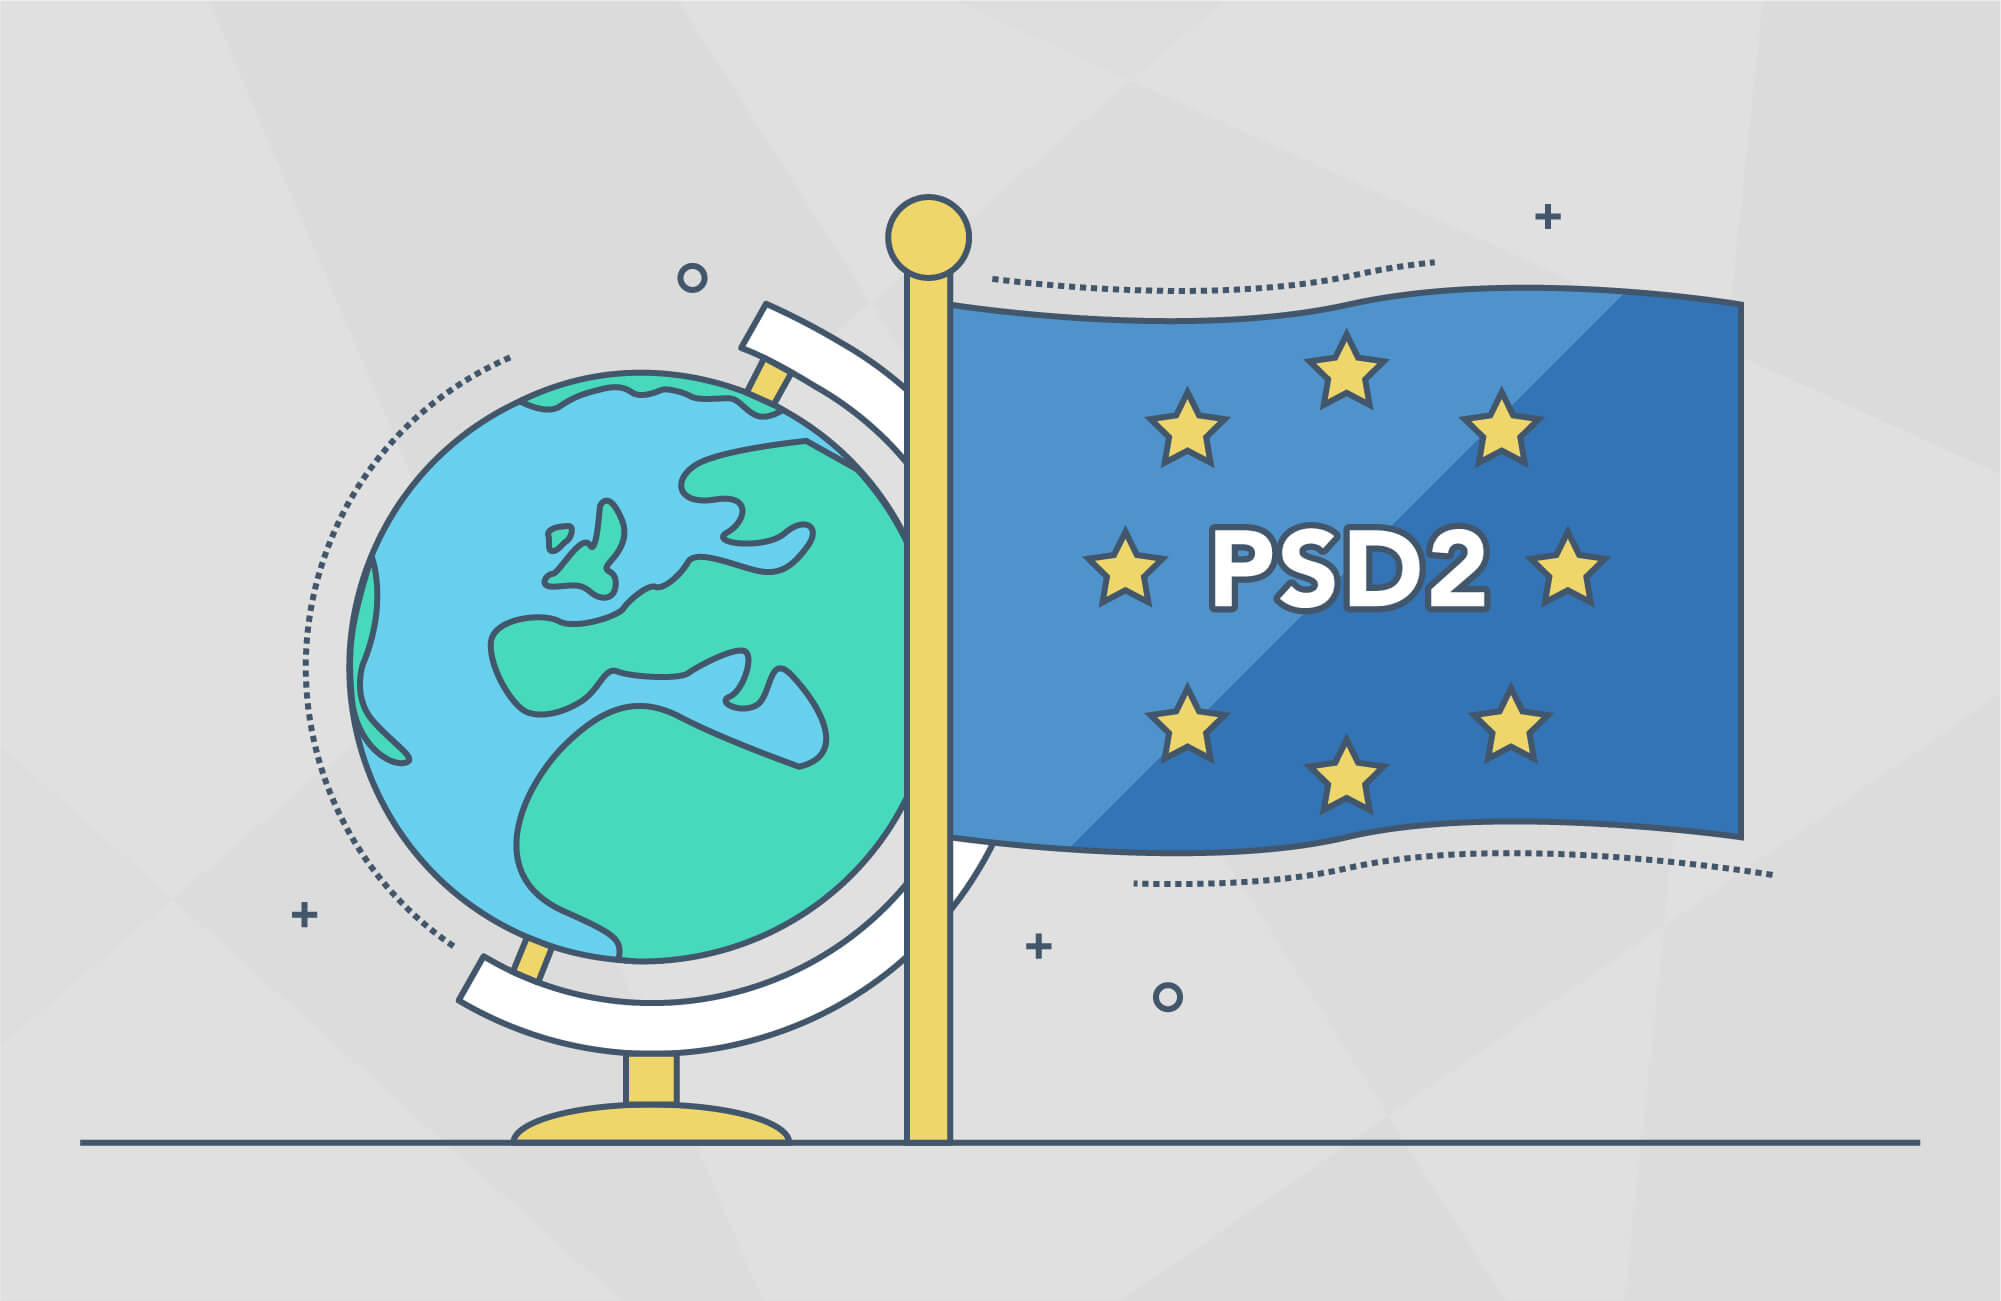 PSD2 and Strong Customer Authentication cover